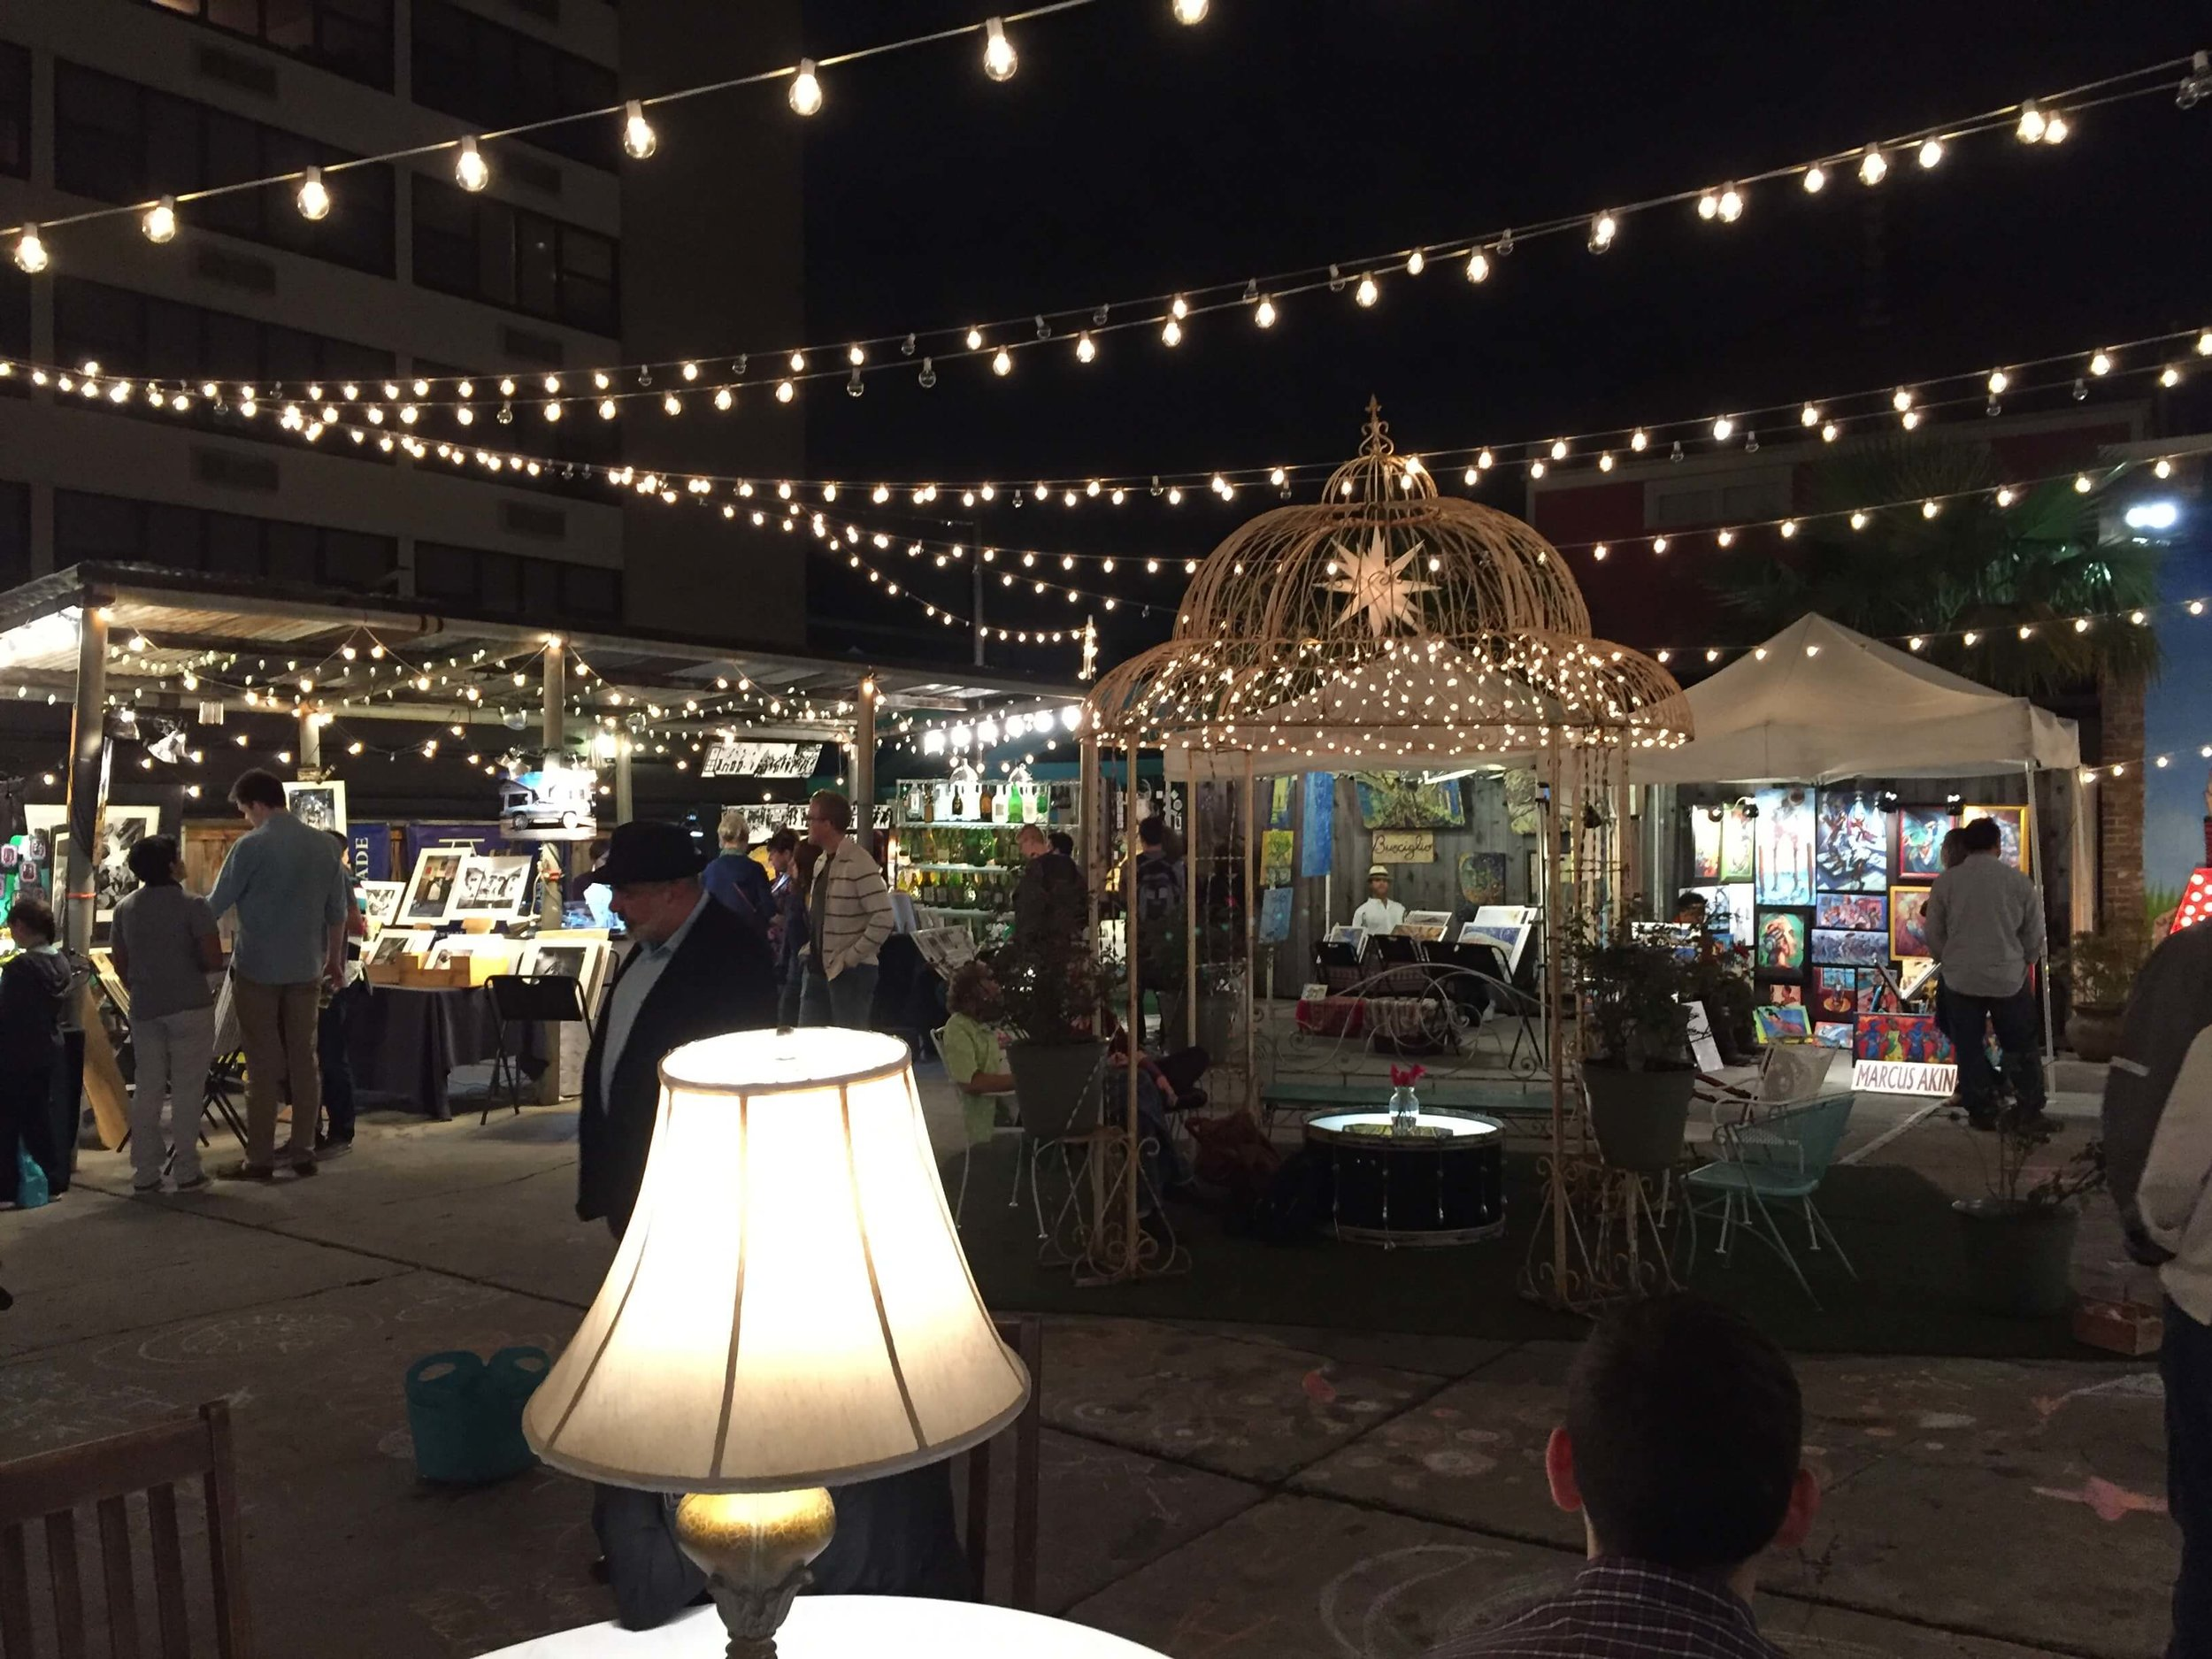 Art Market in New Orleans